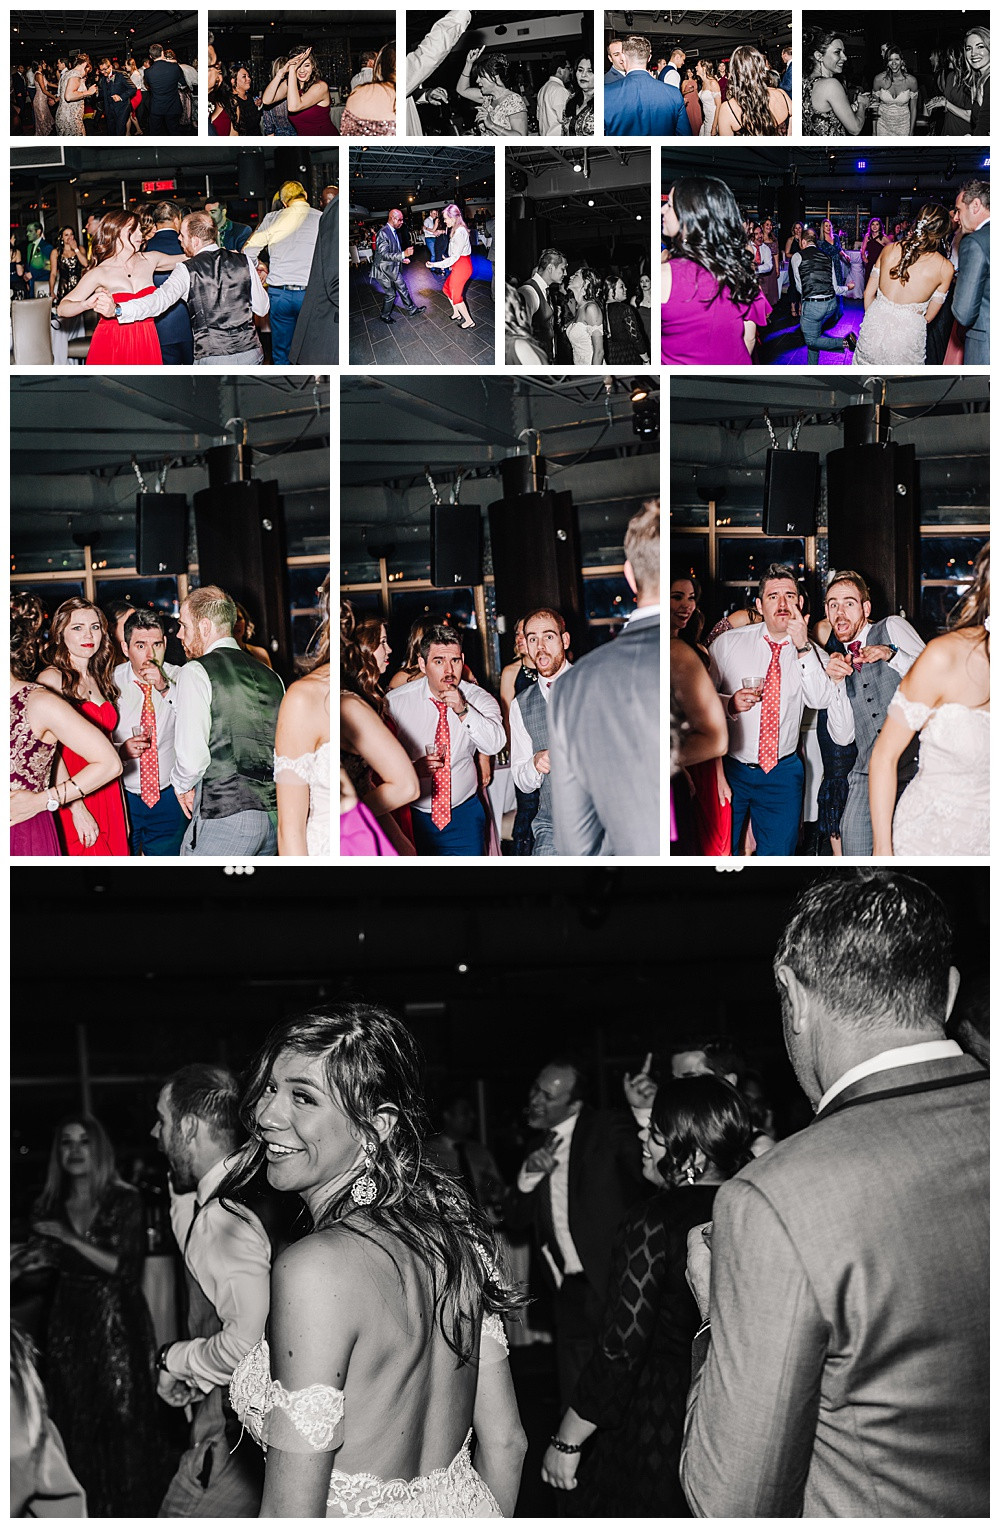 Ottawa Wedding Photographer, Ottawa Wedding Photography, Lago Bar & Grill, Reception, Guests Dancing